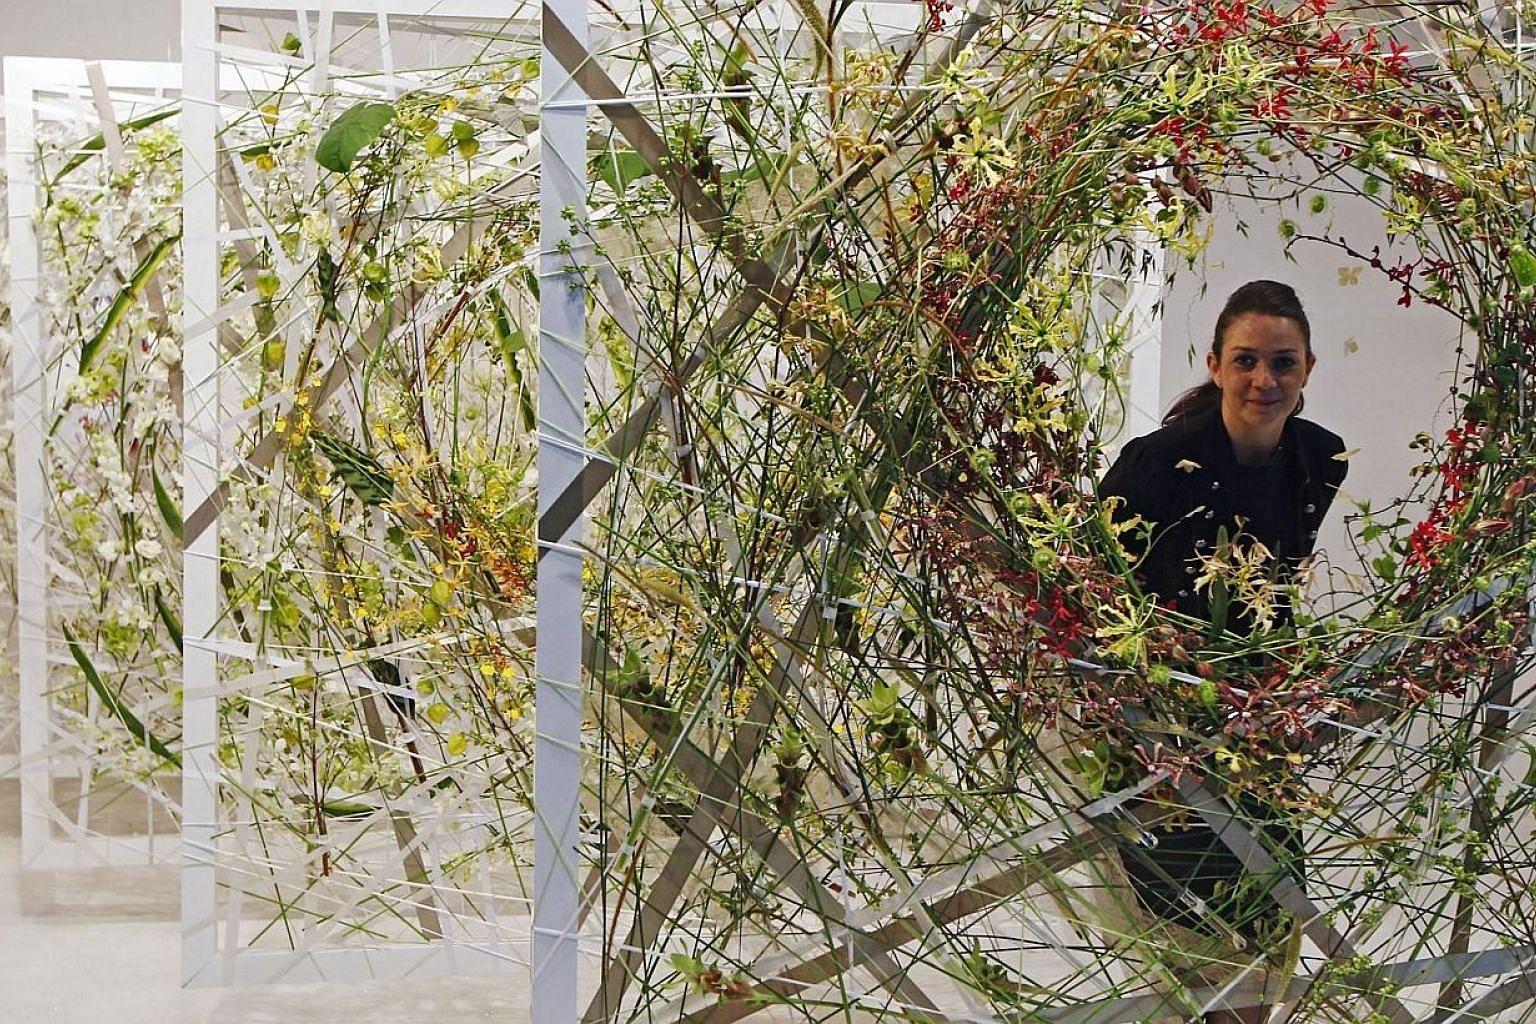 Annette von Einem of Denmark poses for photos in her floral display creation, The Ice Queen Spring Breath, during the Singapore Garden Festival 2014. -- PHOTO: REUTERS